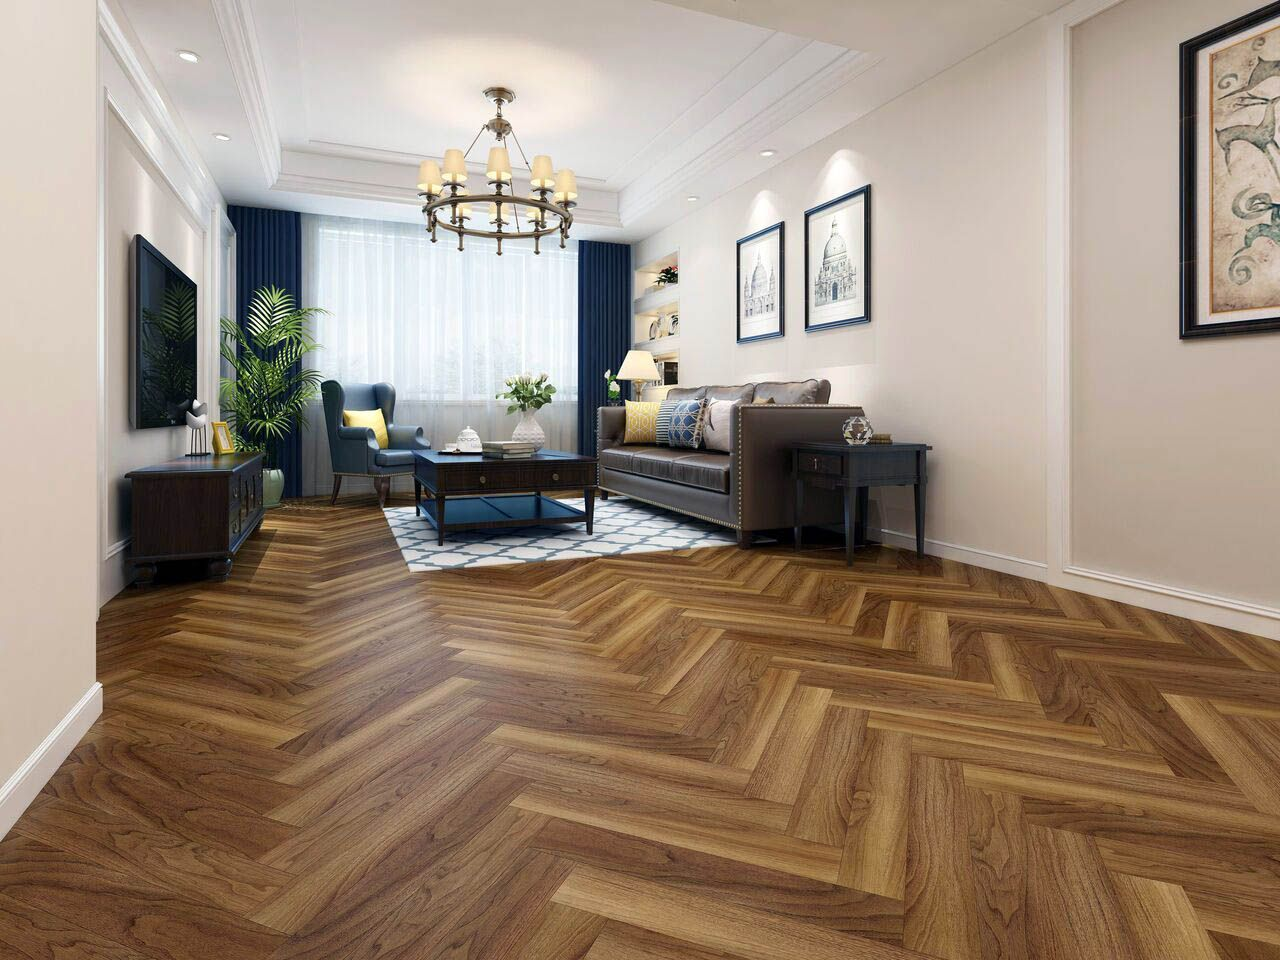 Laminate Floor Design Tips Herringbone laminate flooring